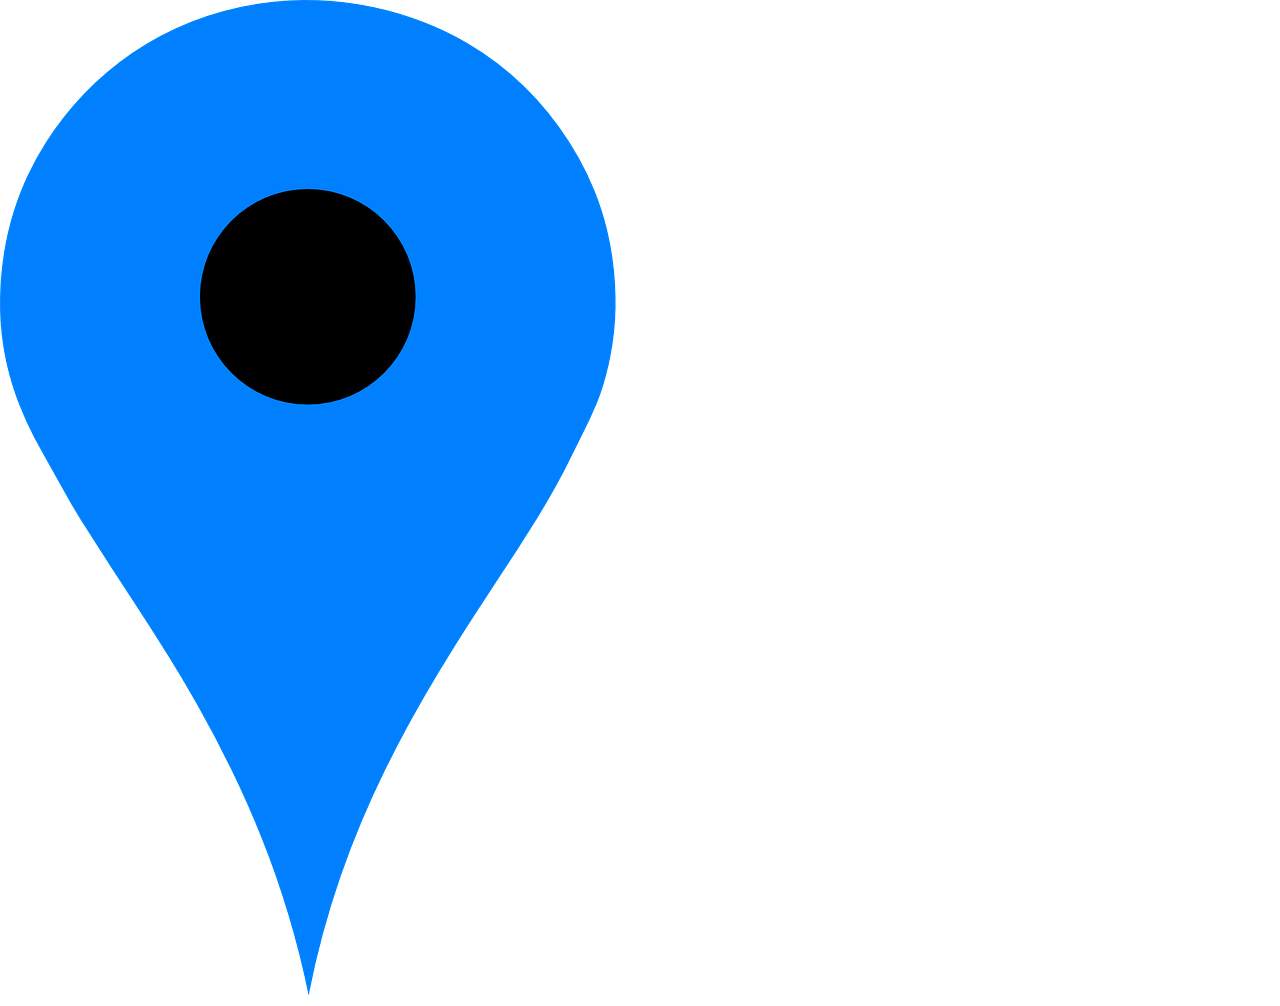 Location Position Icon Free Vector Graphic On Pixabay: Pin,location,map,icon,navigation